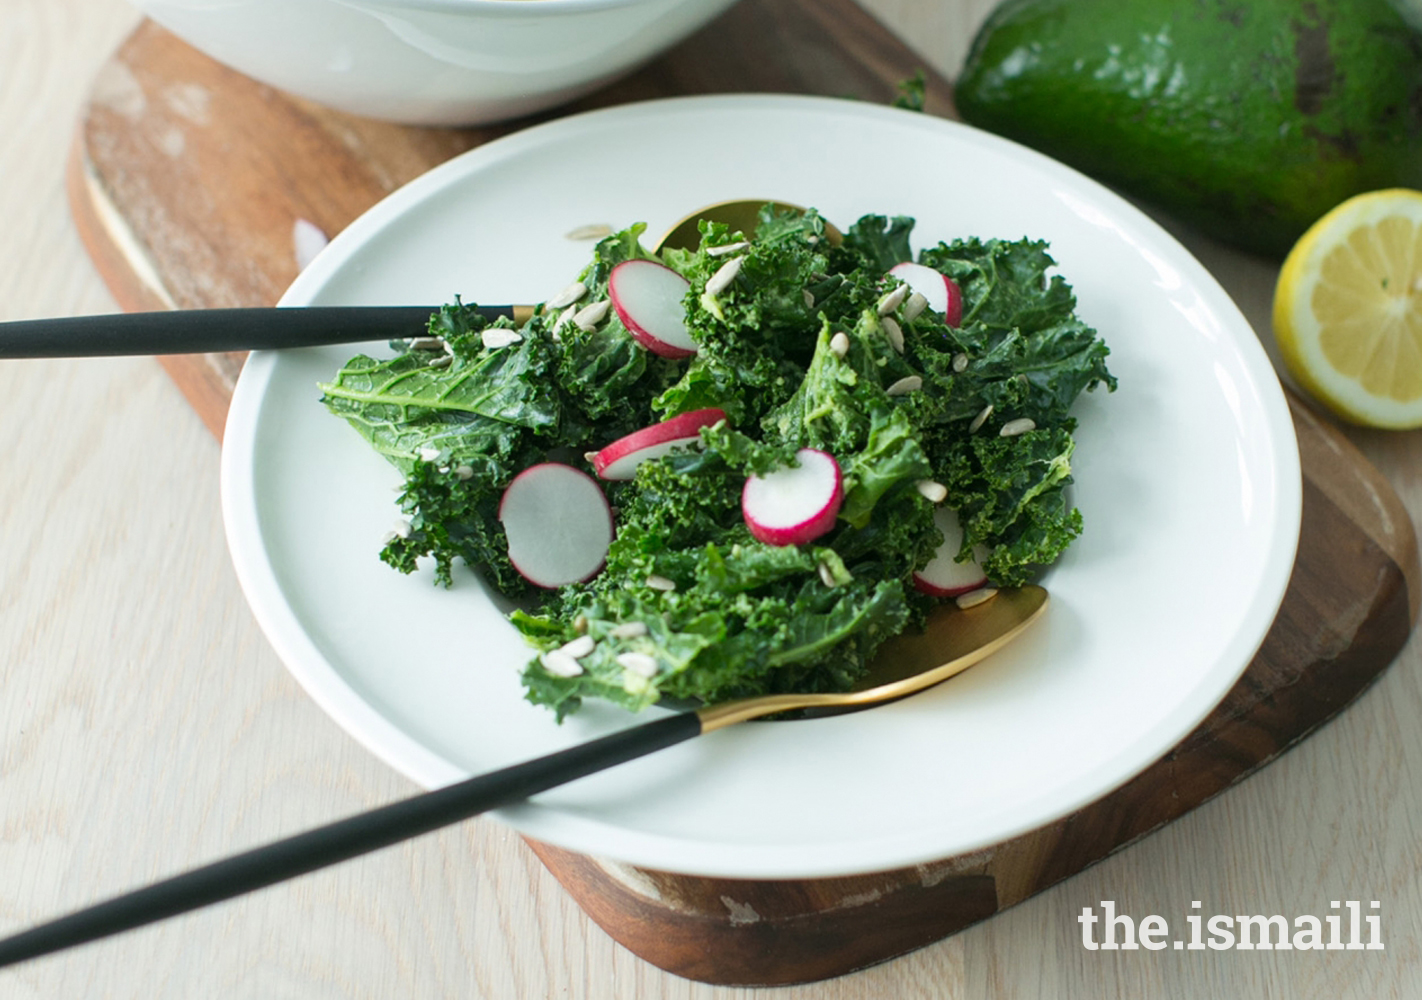 Massaged Kale & Avocado Salad